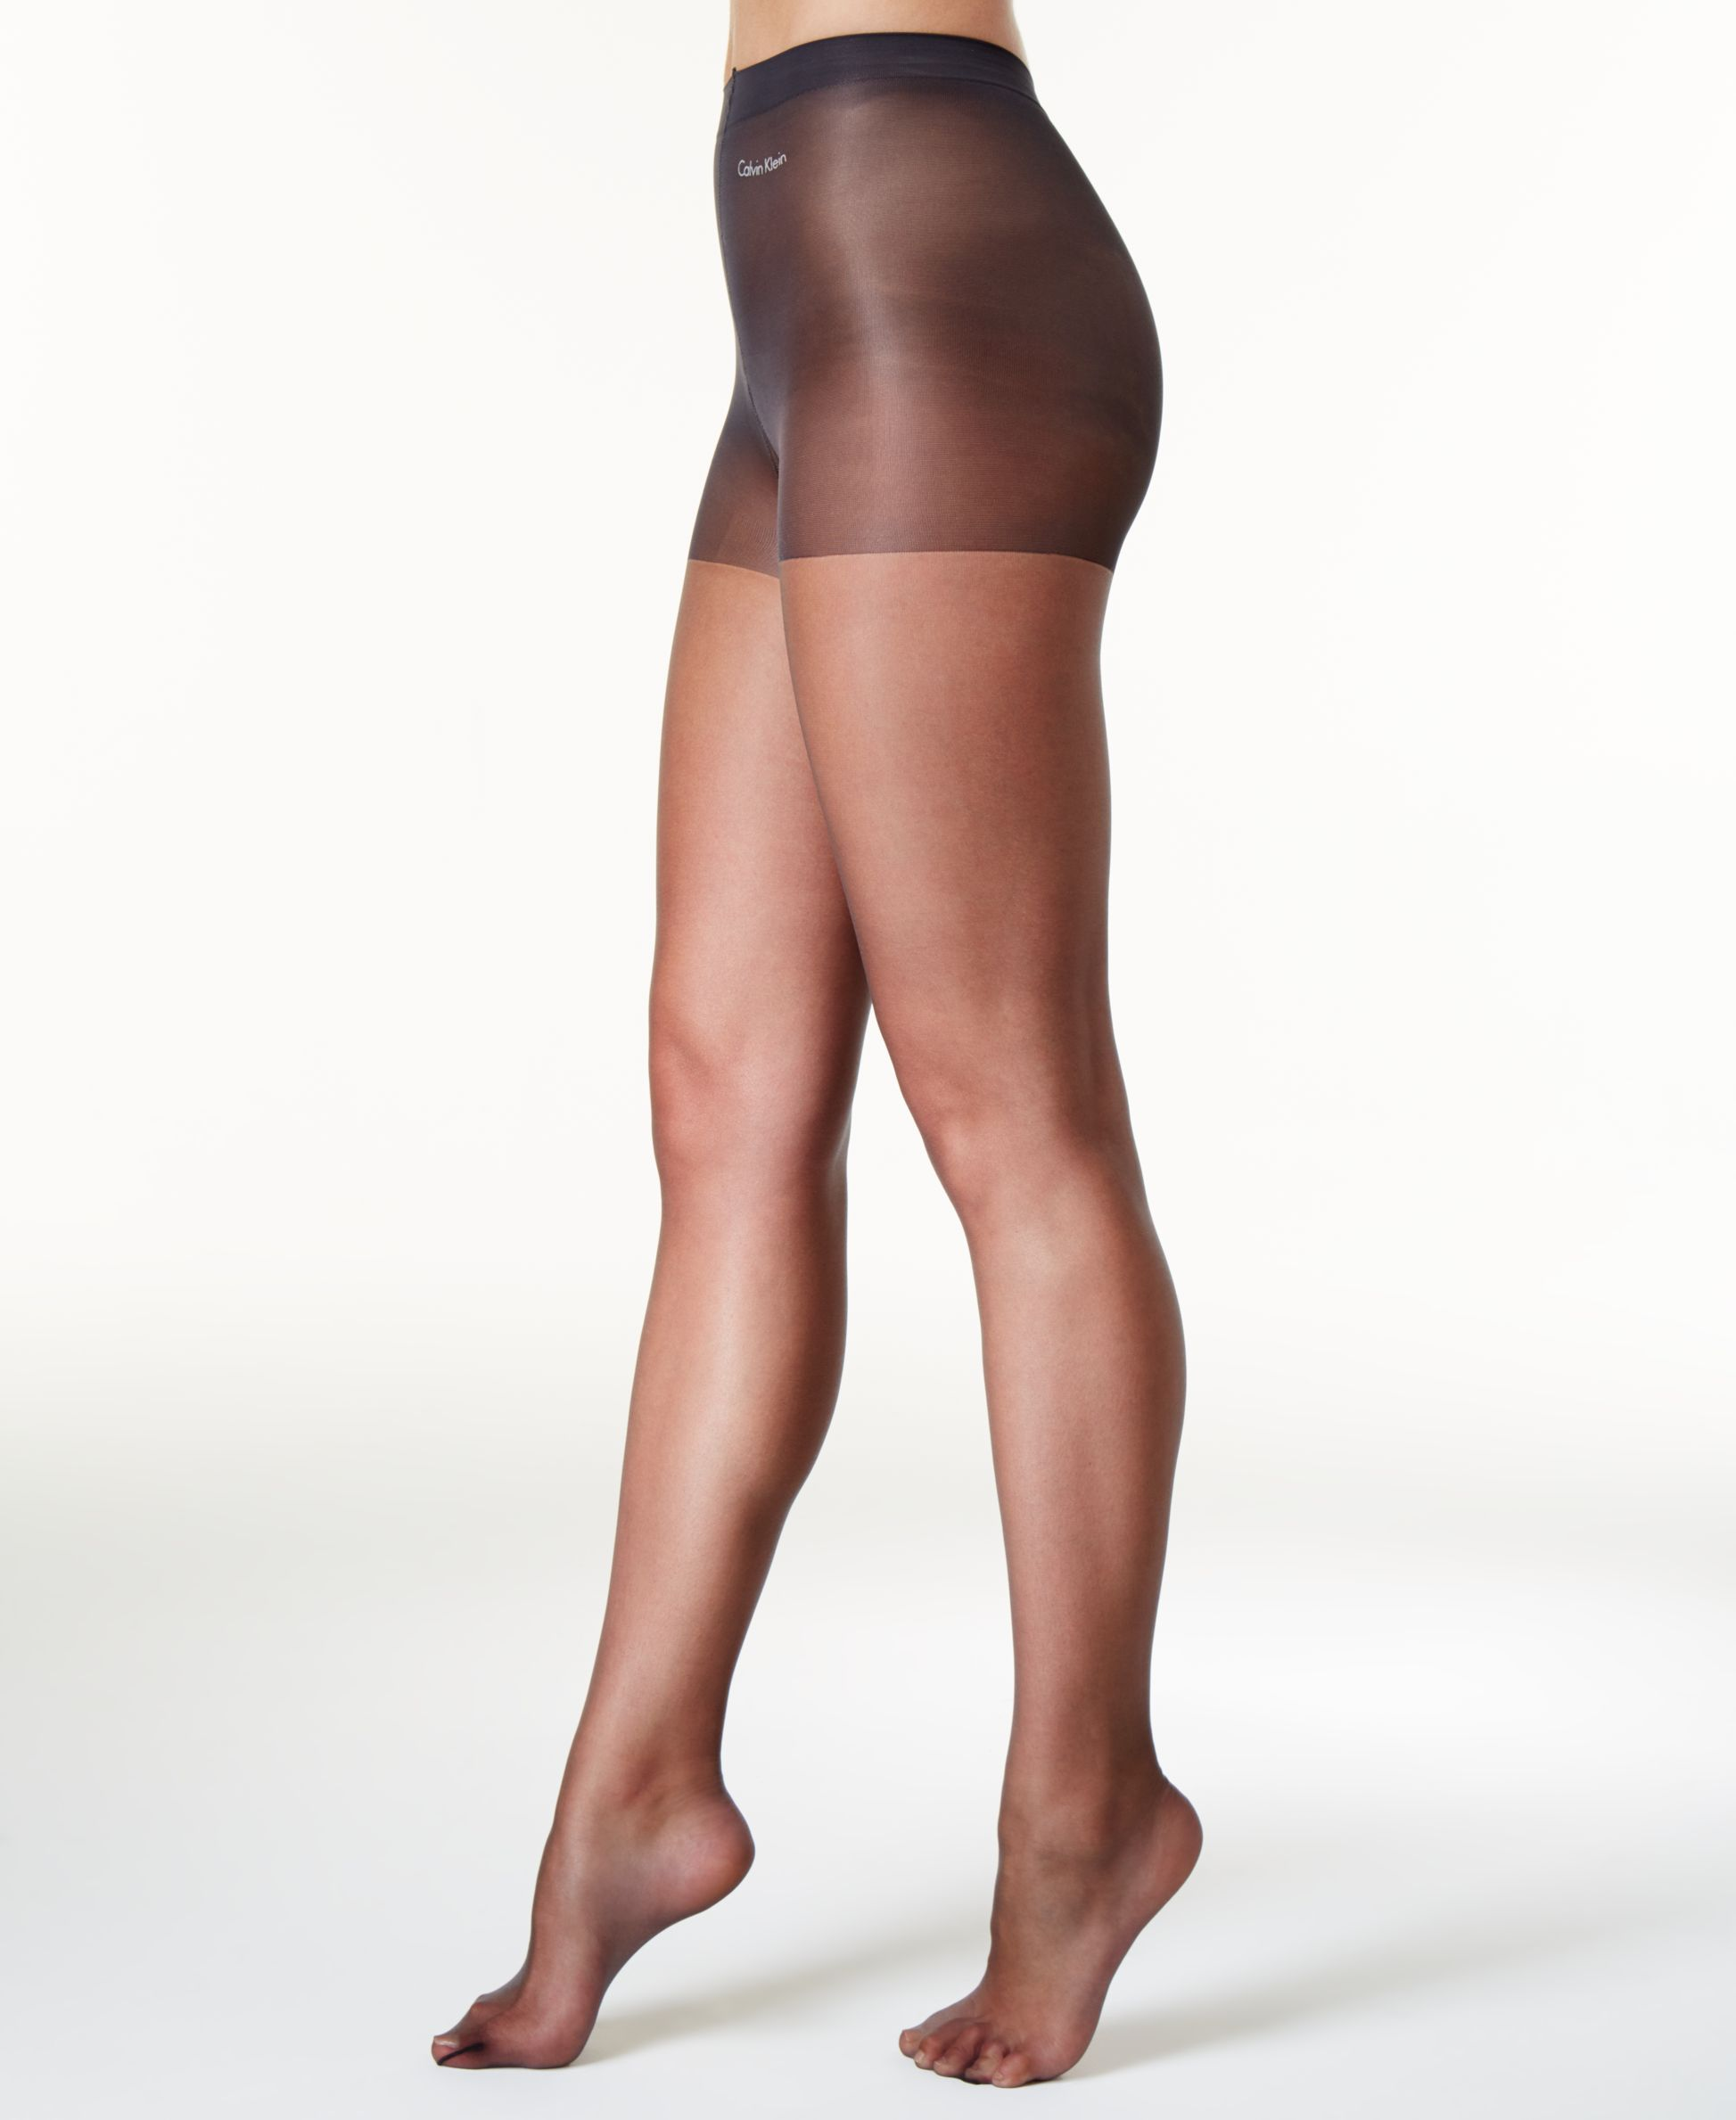 ea277981d Women s Infinite Sheer Control Top Tights in 2019